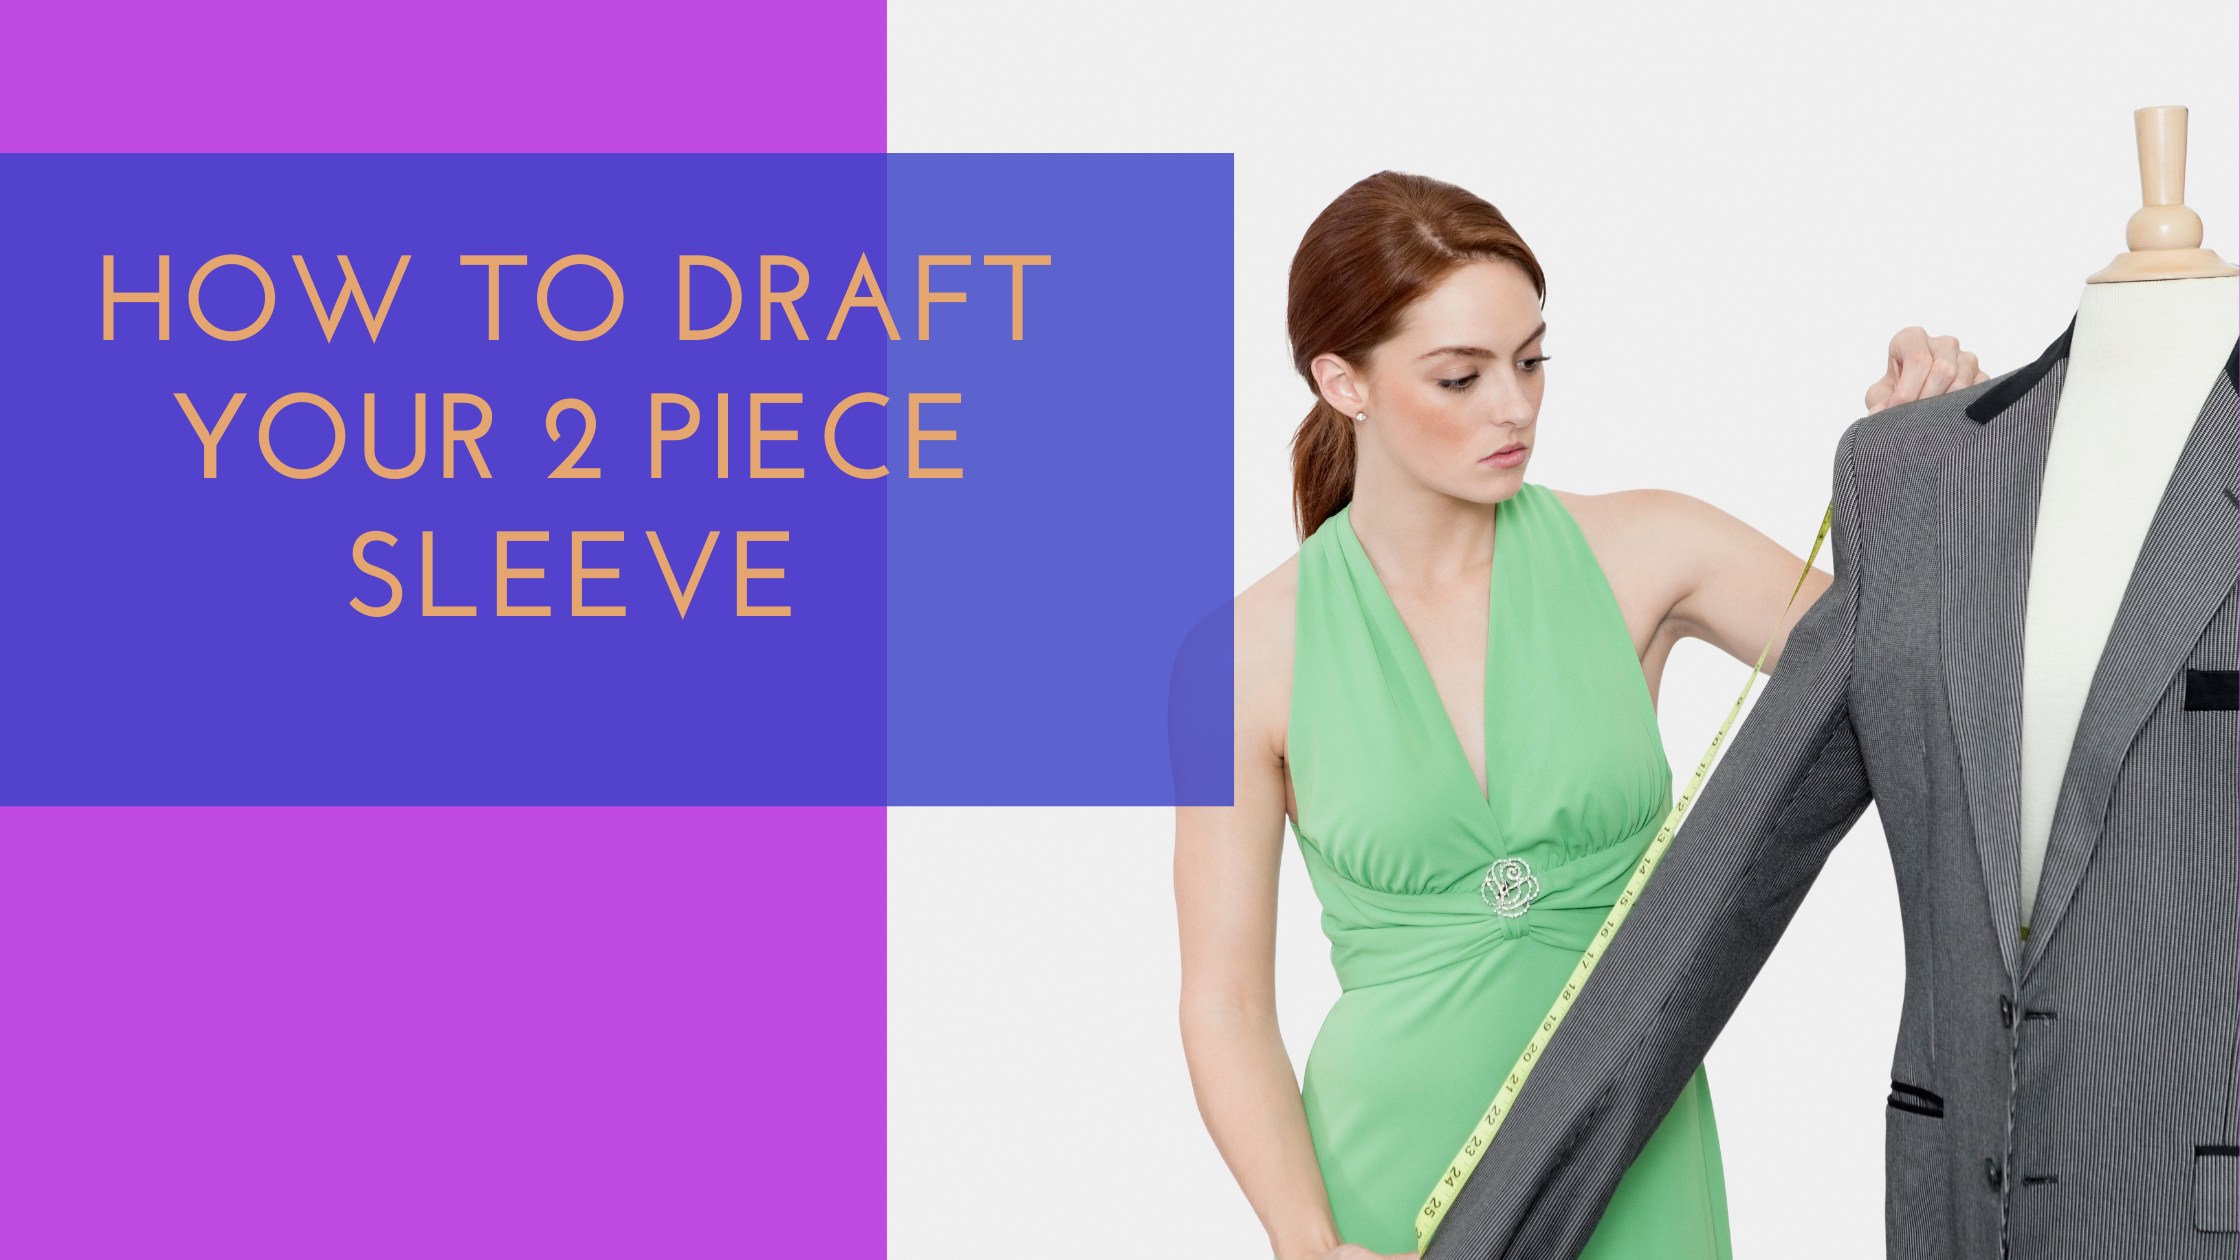 HOW TO DRAFT A TWO PIECE SLEEVE